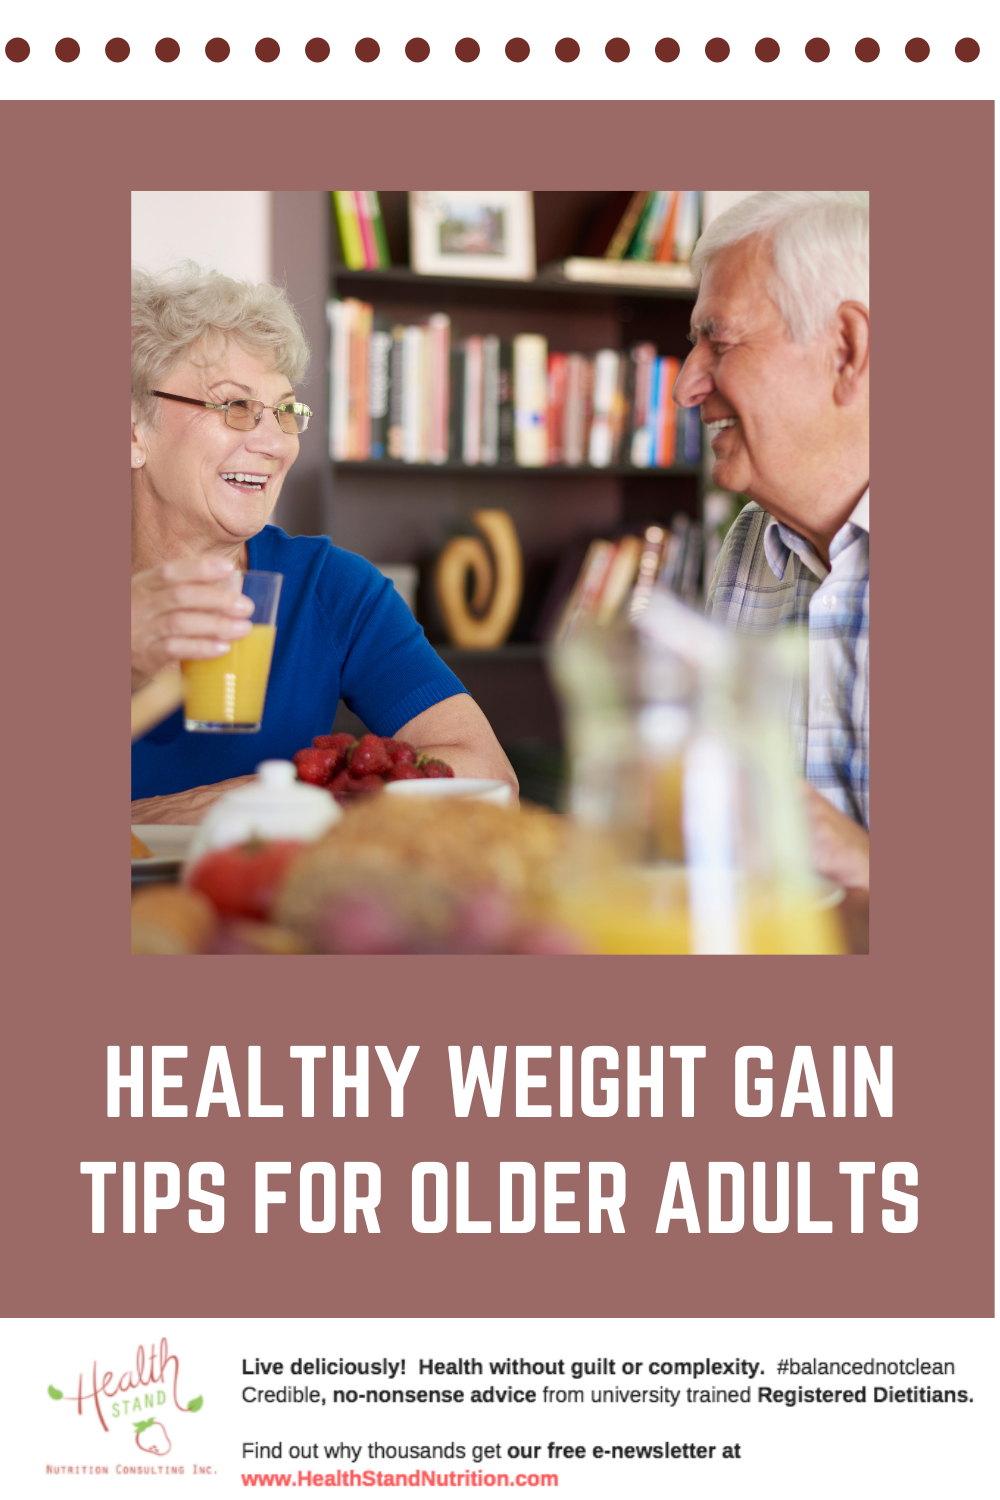 Healthy weight gain tips